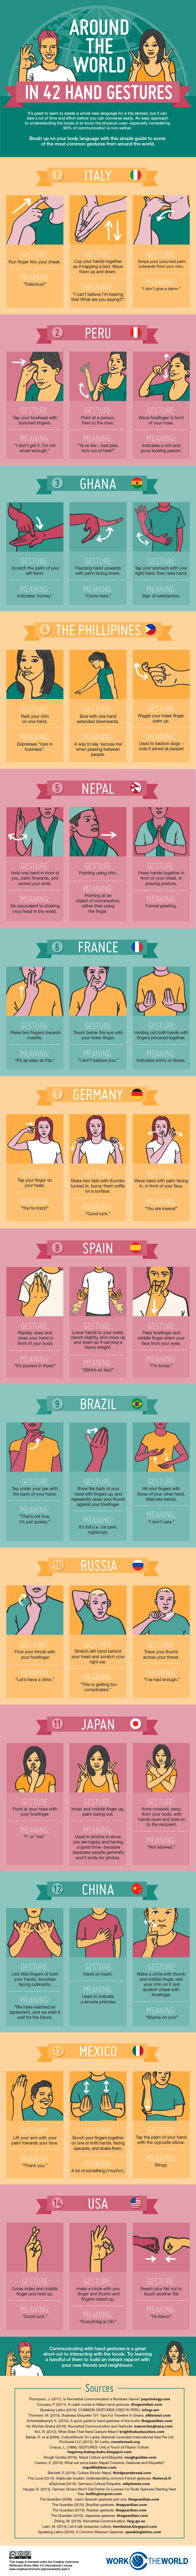 What is the Meaning of Hand Gestures in Various Parts of the World #infographic